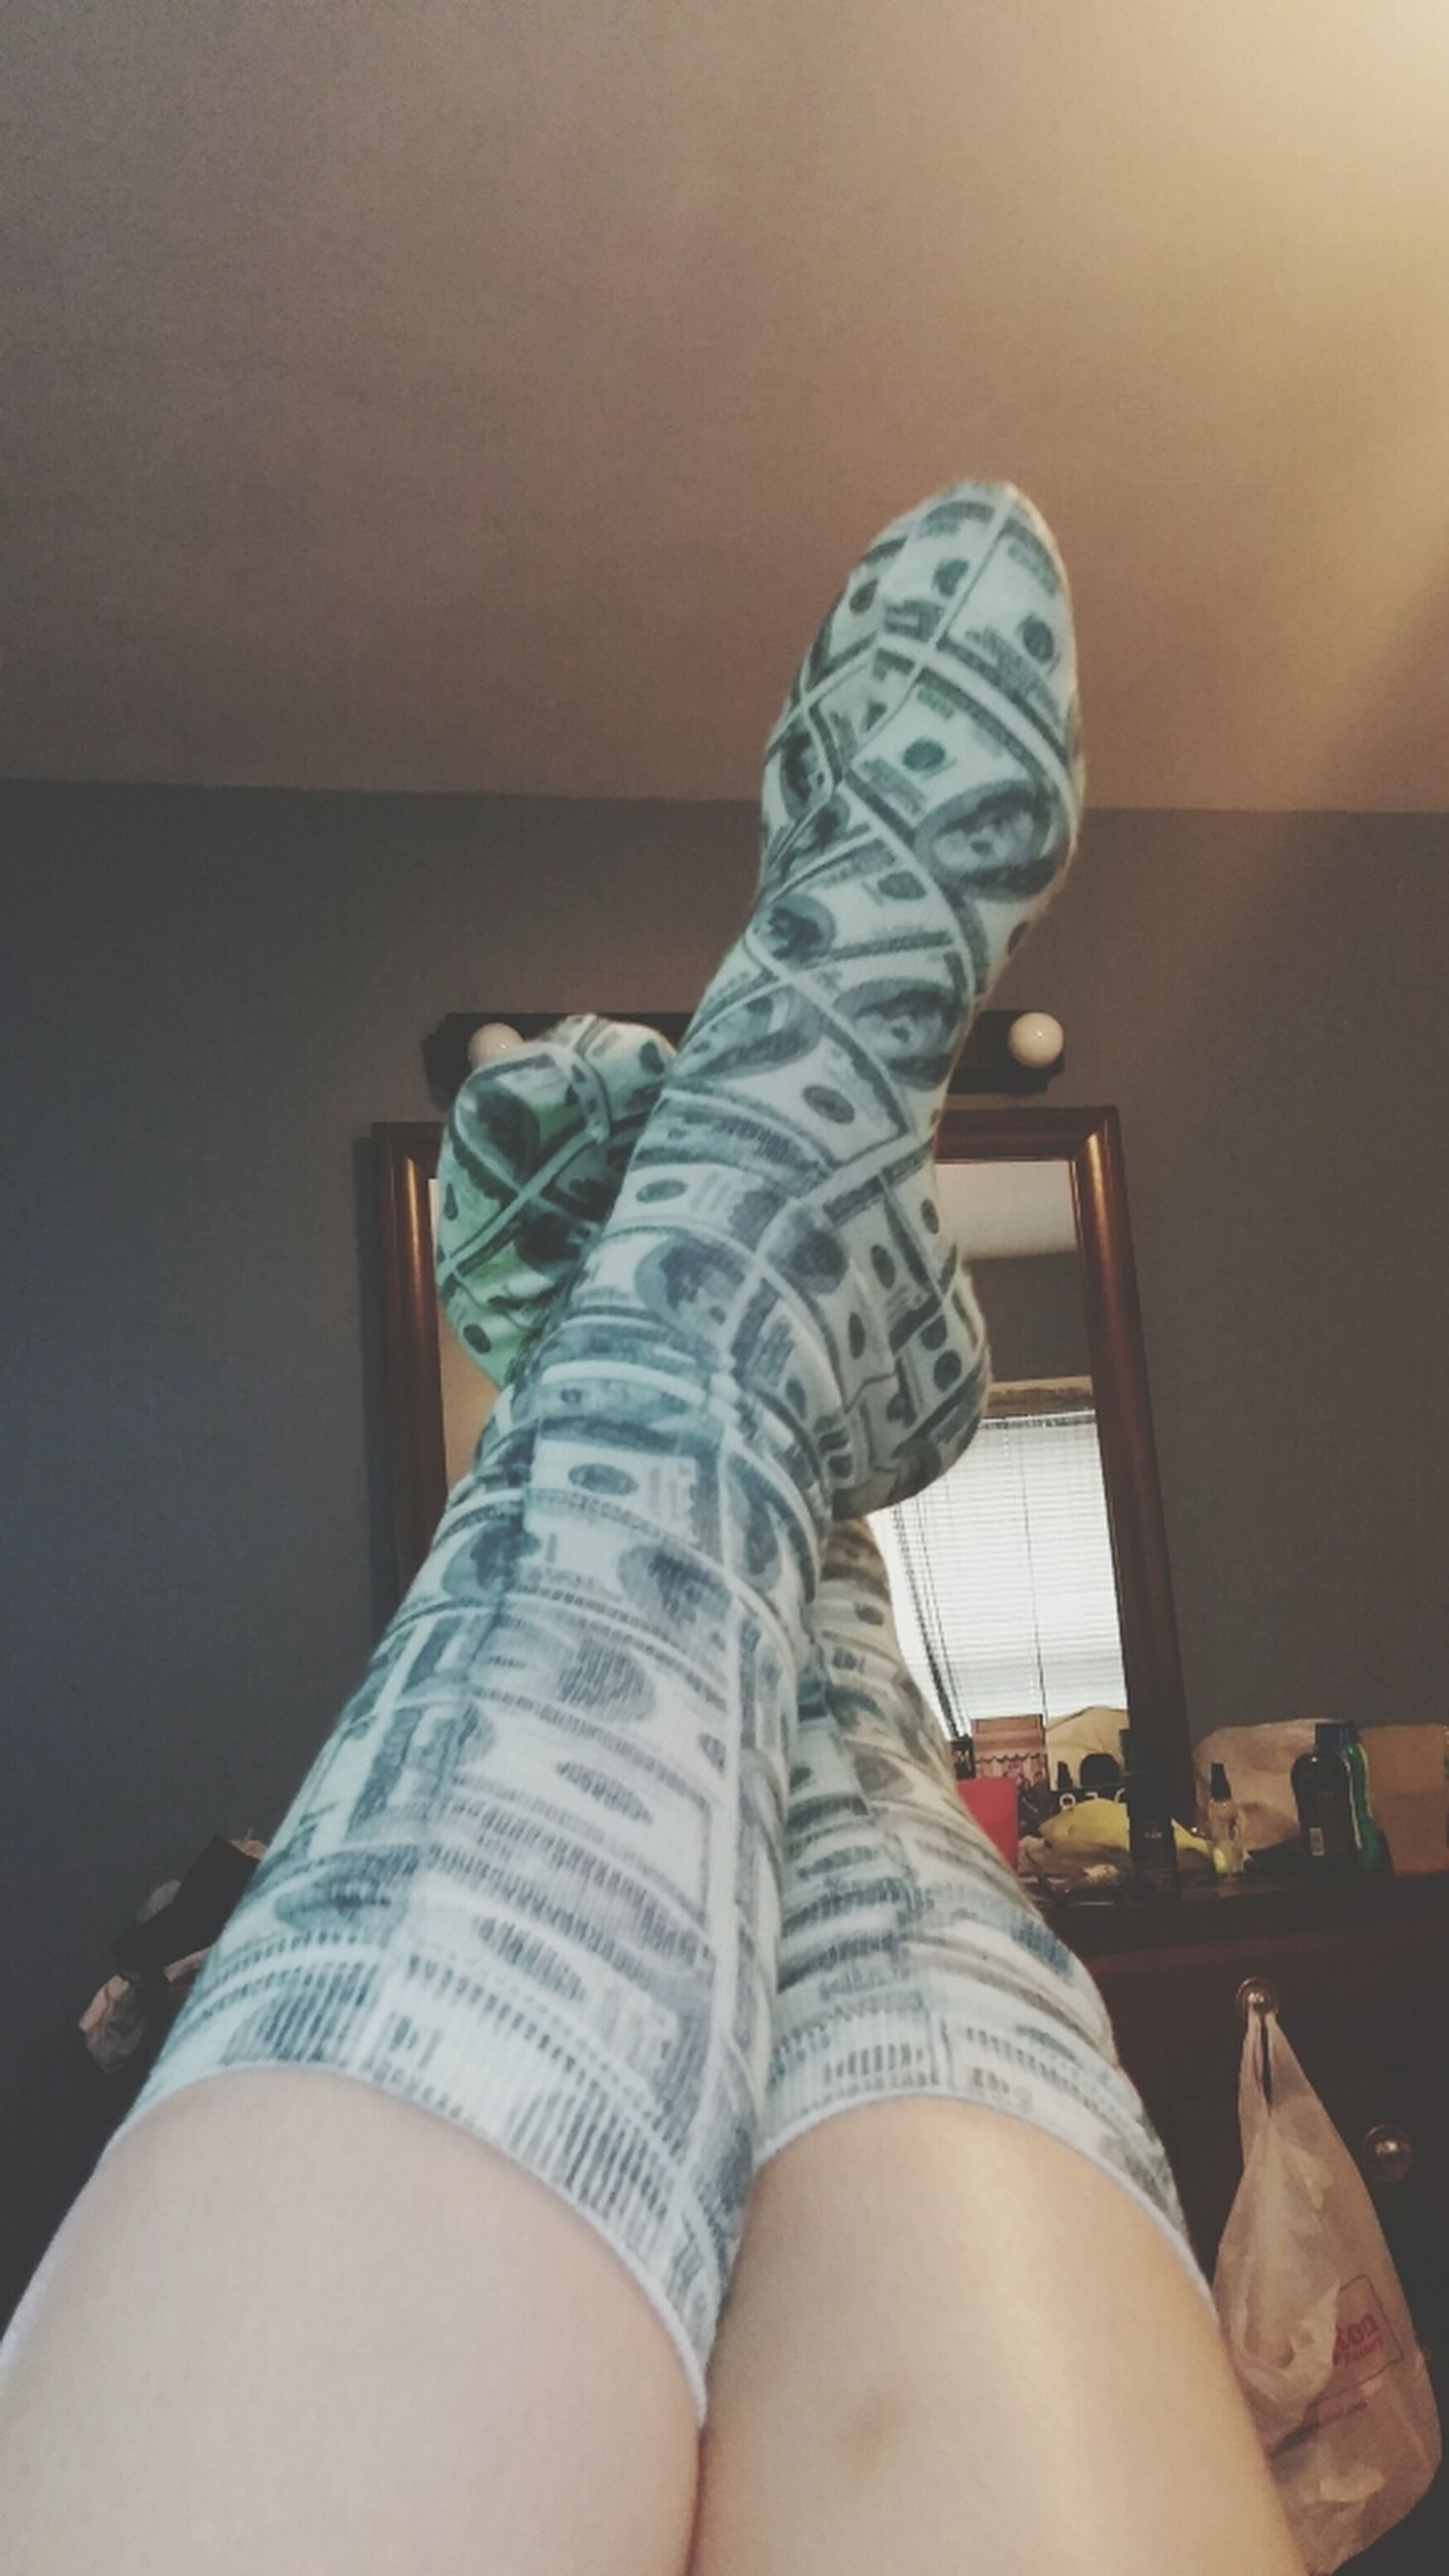 indoors, low section, person, personal perspective, lifestyles, home interior, relaxation, shoe, human foot, casual clothing, jeans, sitting, leisure activity, standing, bed, legs crossed at ankle